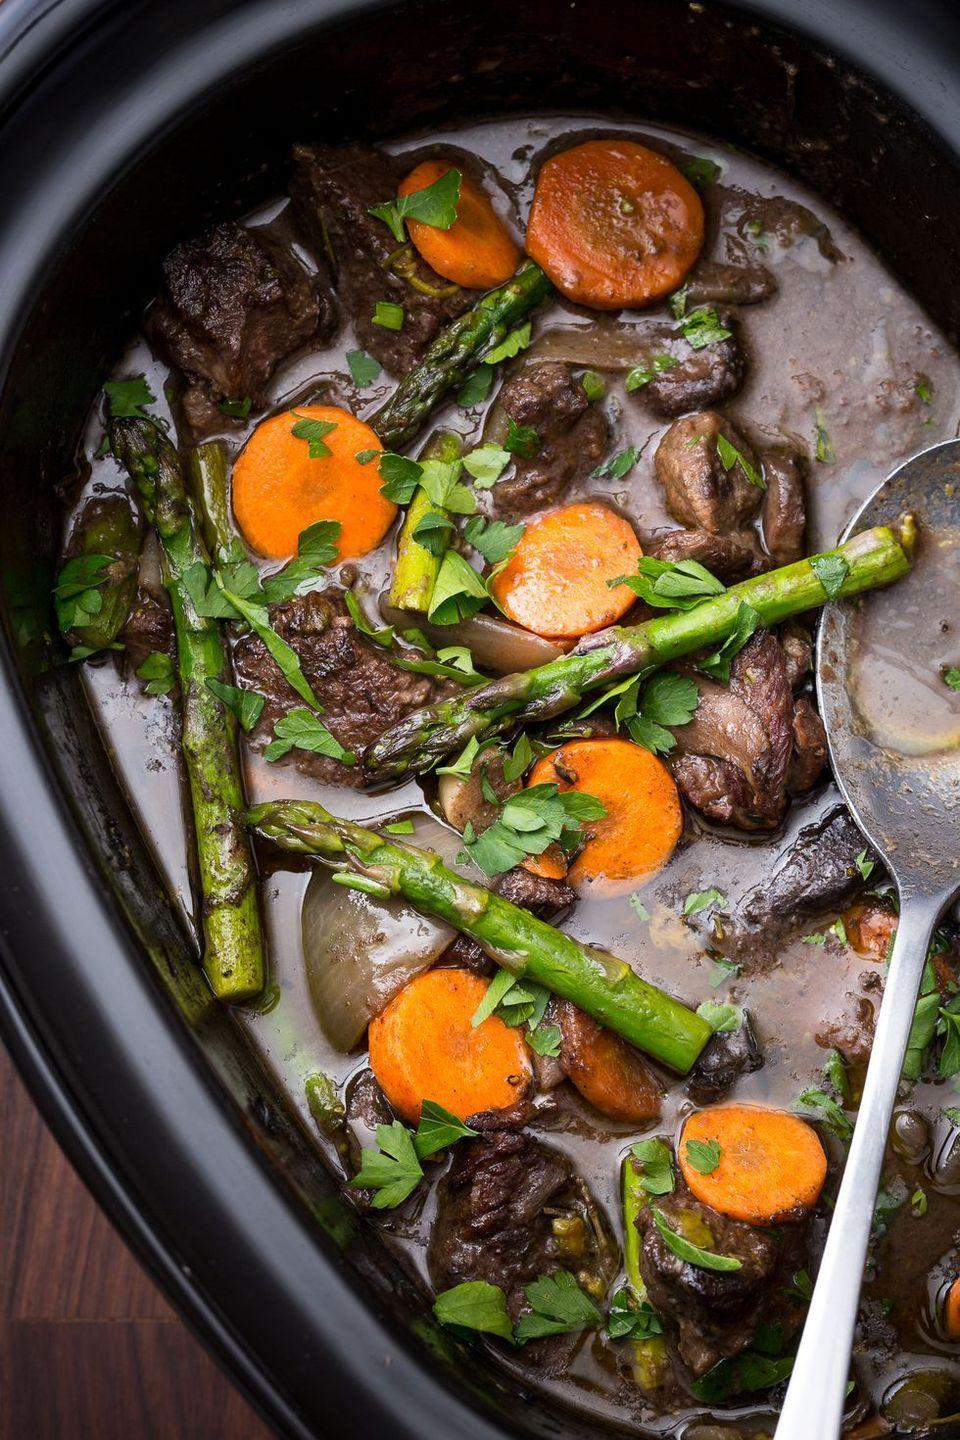 "<p>Add some freshness to the beefy classic with this insanely delish slow cooker dinner.</p><p>Get the <a href=""https://www.delish.com/uk/cooking/recipes/a28830287/slow-cooker-beef-bourguignon/"" rel=""nofollow noopener"" target=""_blank"" data-ylk=""slk:Slow Cooker Spring Beef Bourguignon"" class=""link rapid-noclick-resp"">Slow Cooker Spring Beef Bourguignon</a> recipe.</p>"